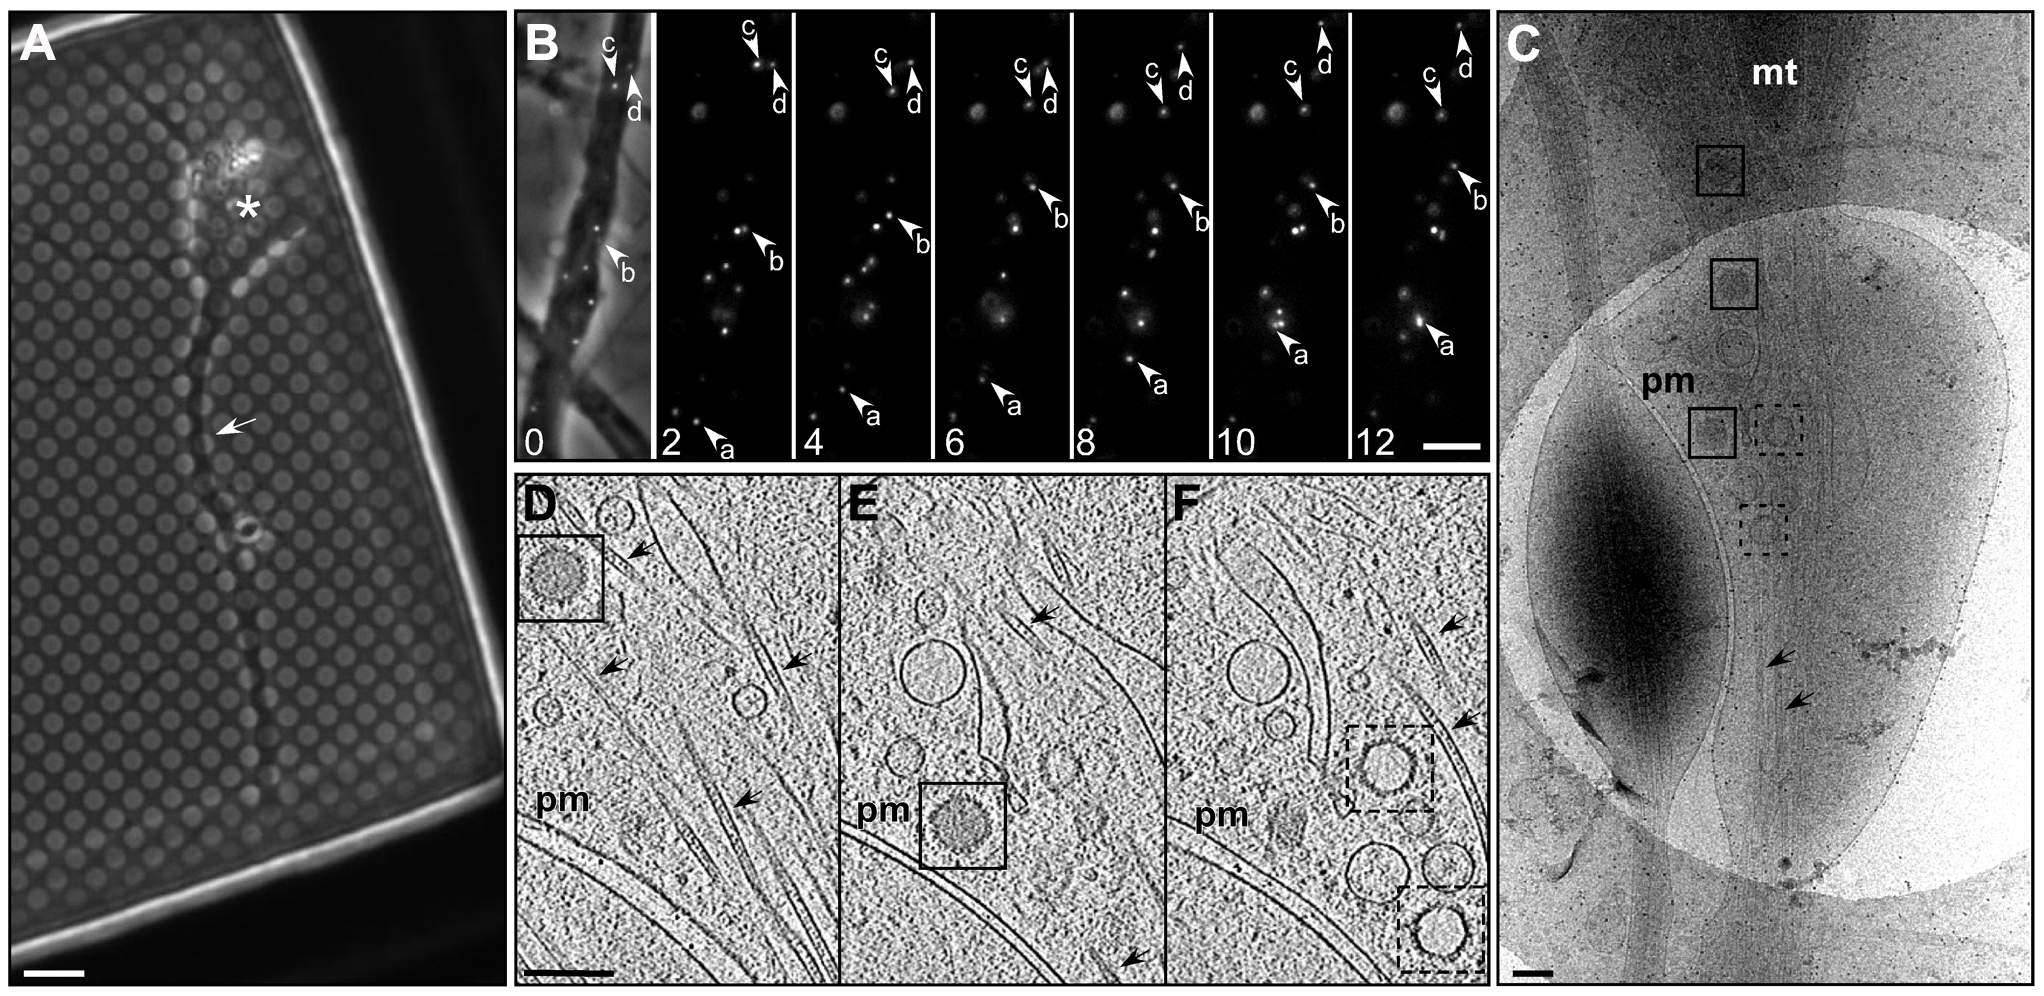 Transport of HSV1 capsids in neurons during egress.